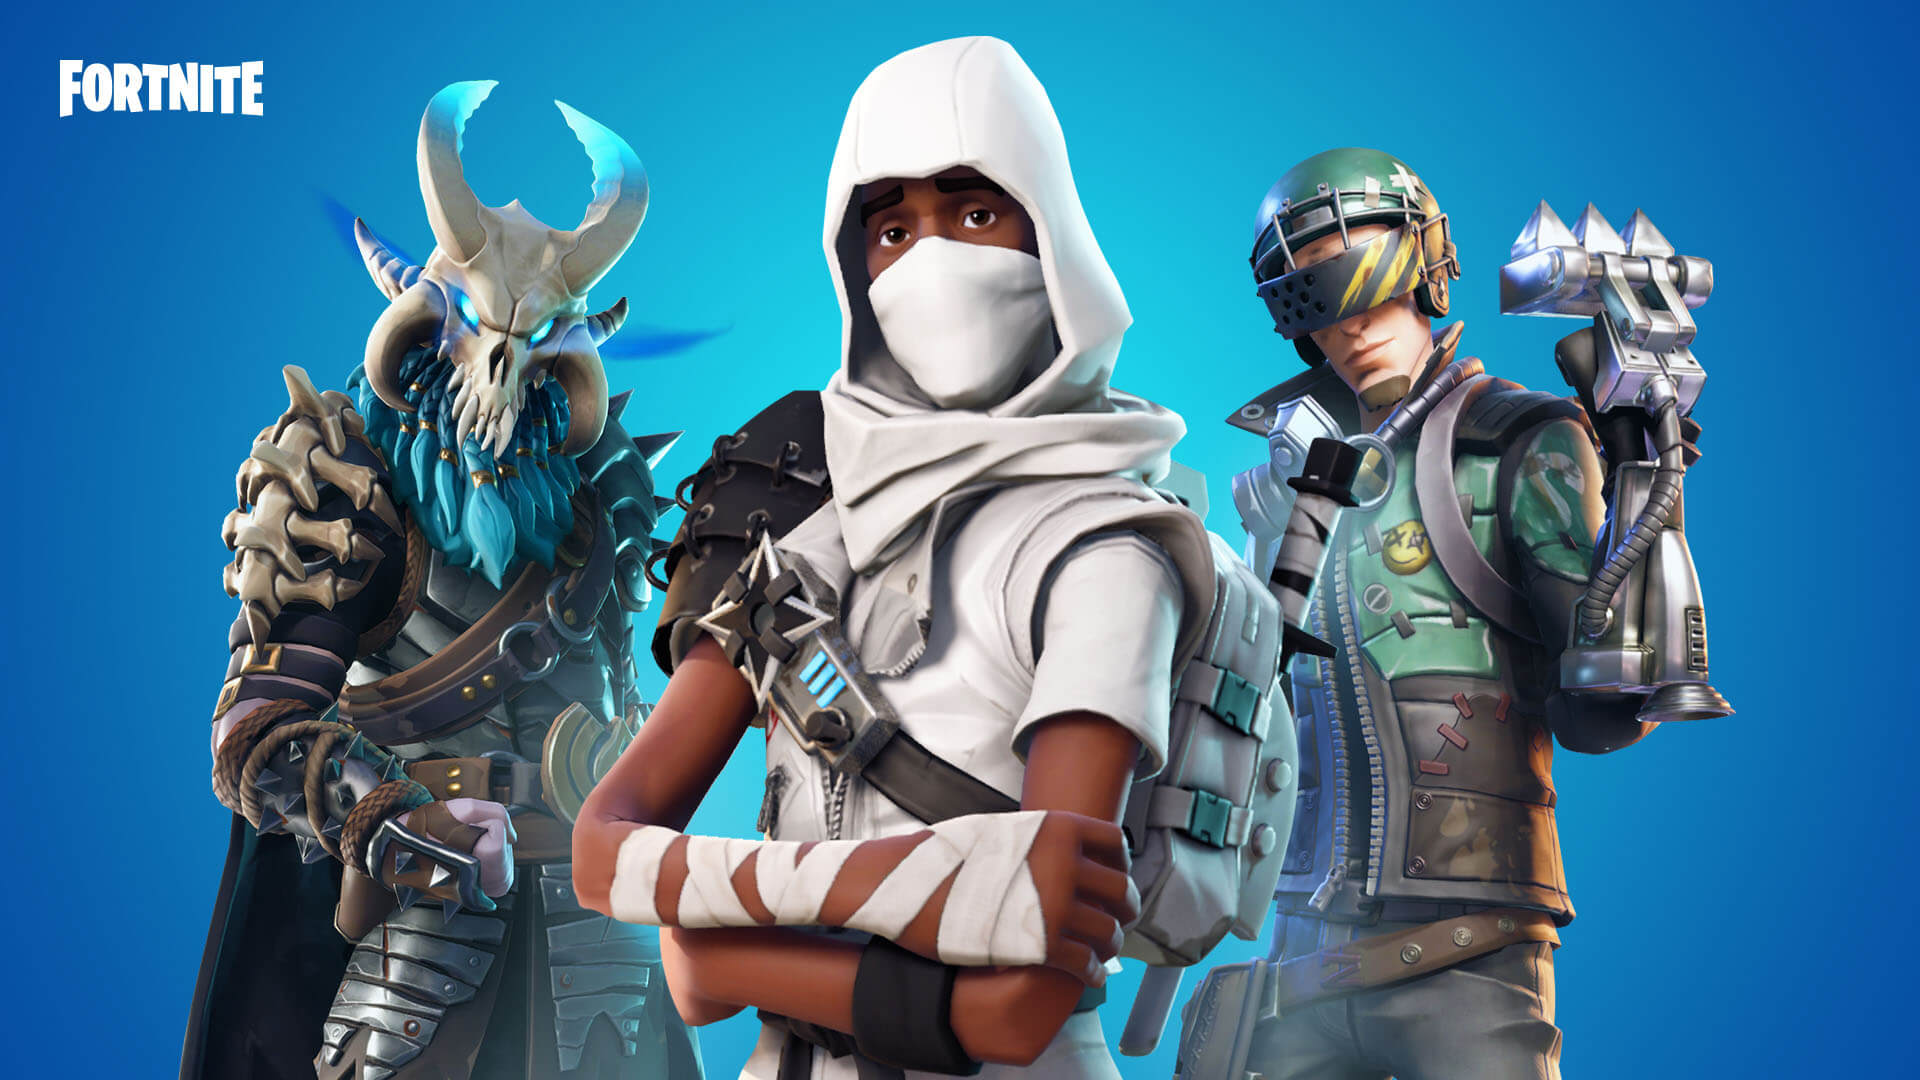 Fortnite Storm Surge Damage Fornite Baller Block Storm Surge Damage And Generate Controversy